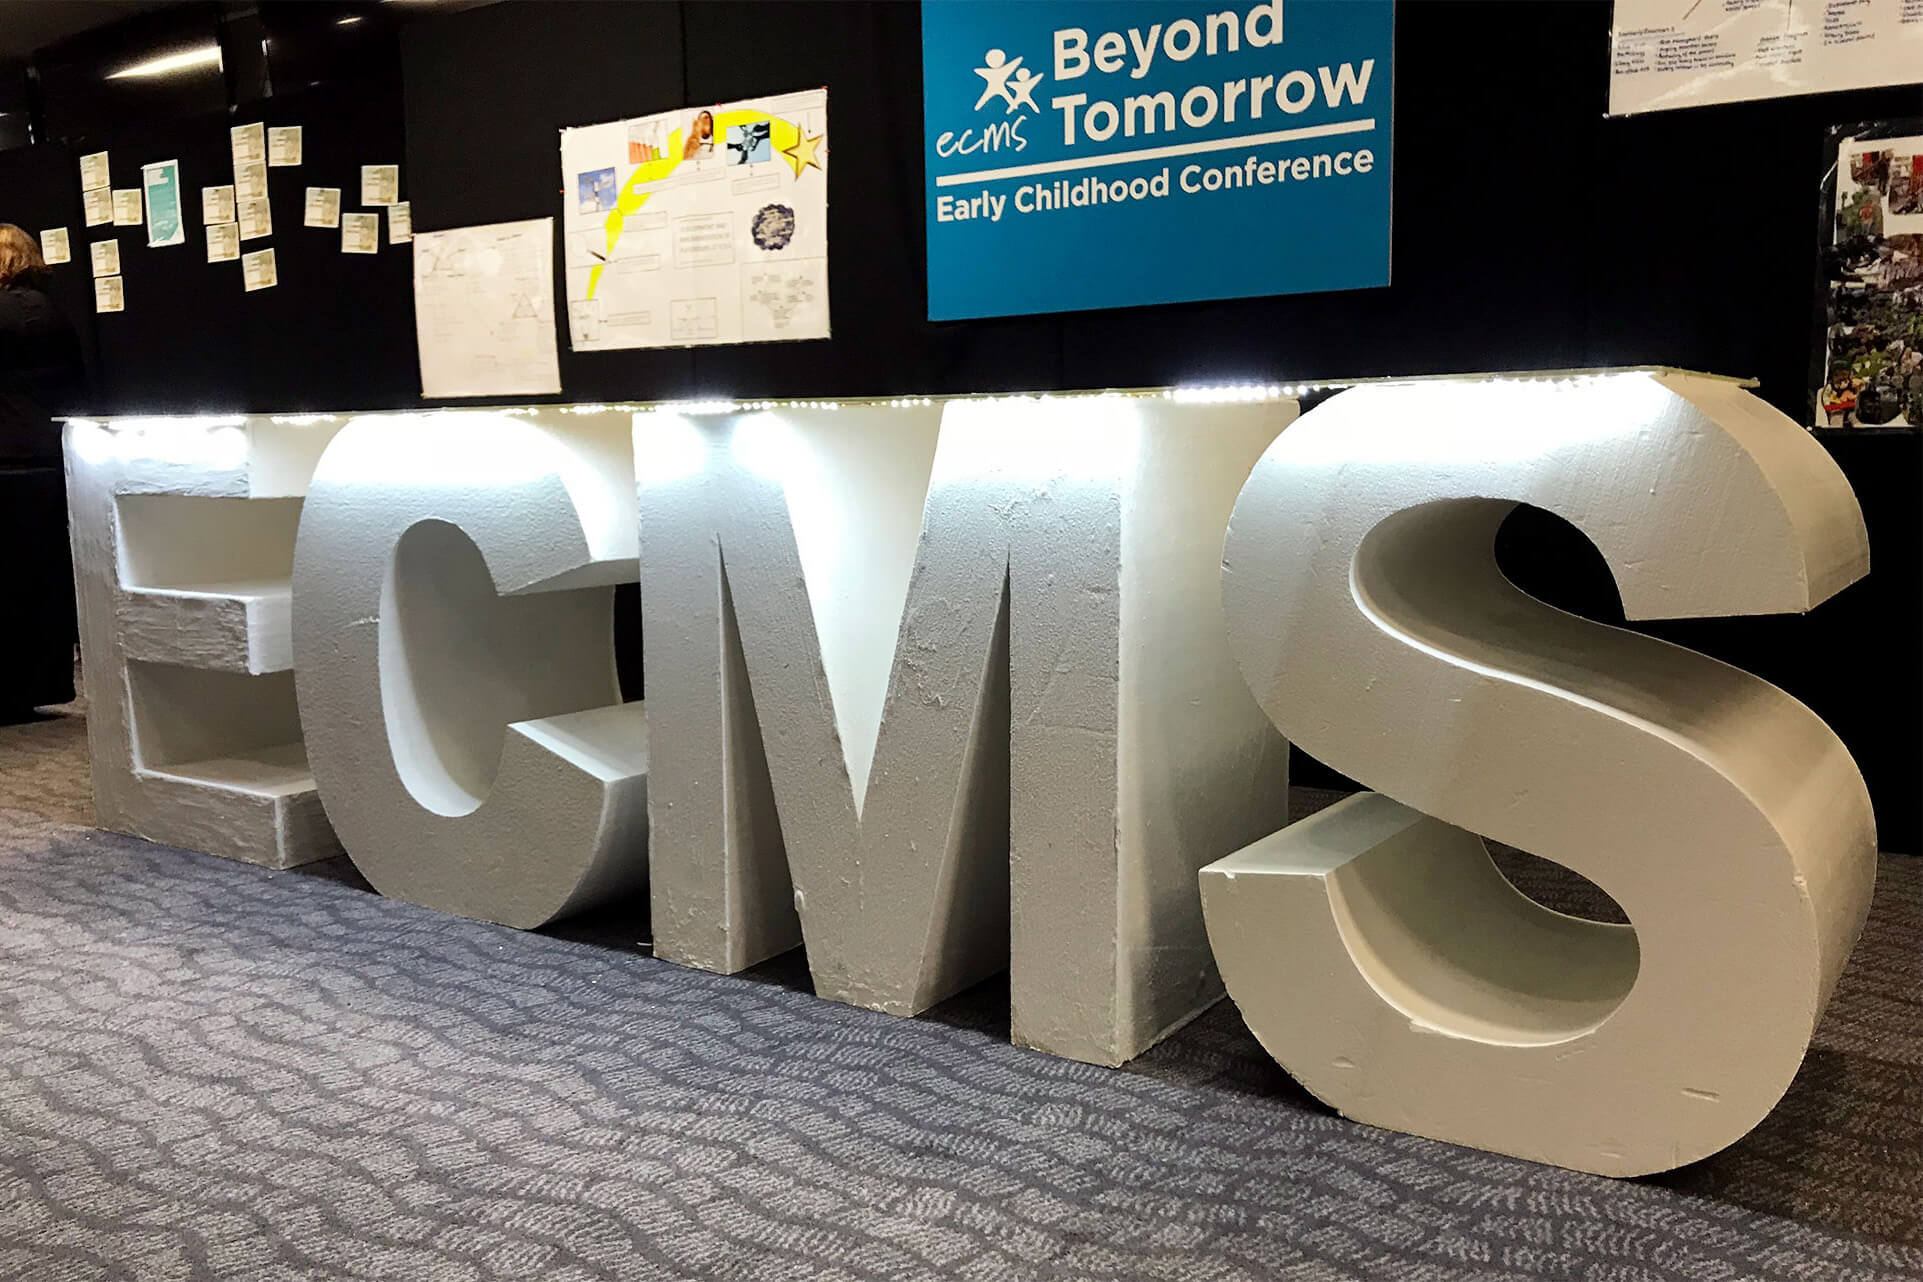 Exceeding Expectations — ECMS Beyond Tomorrow Conference